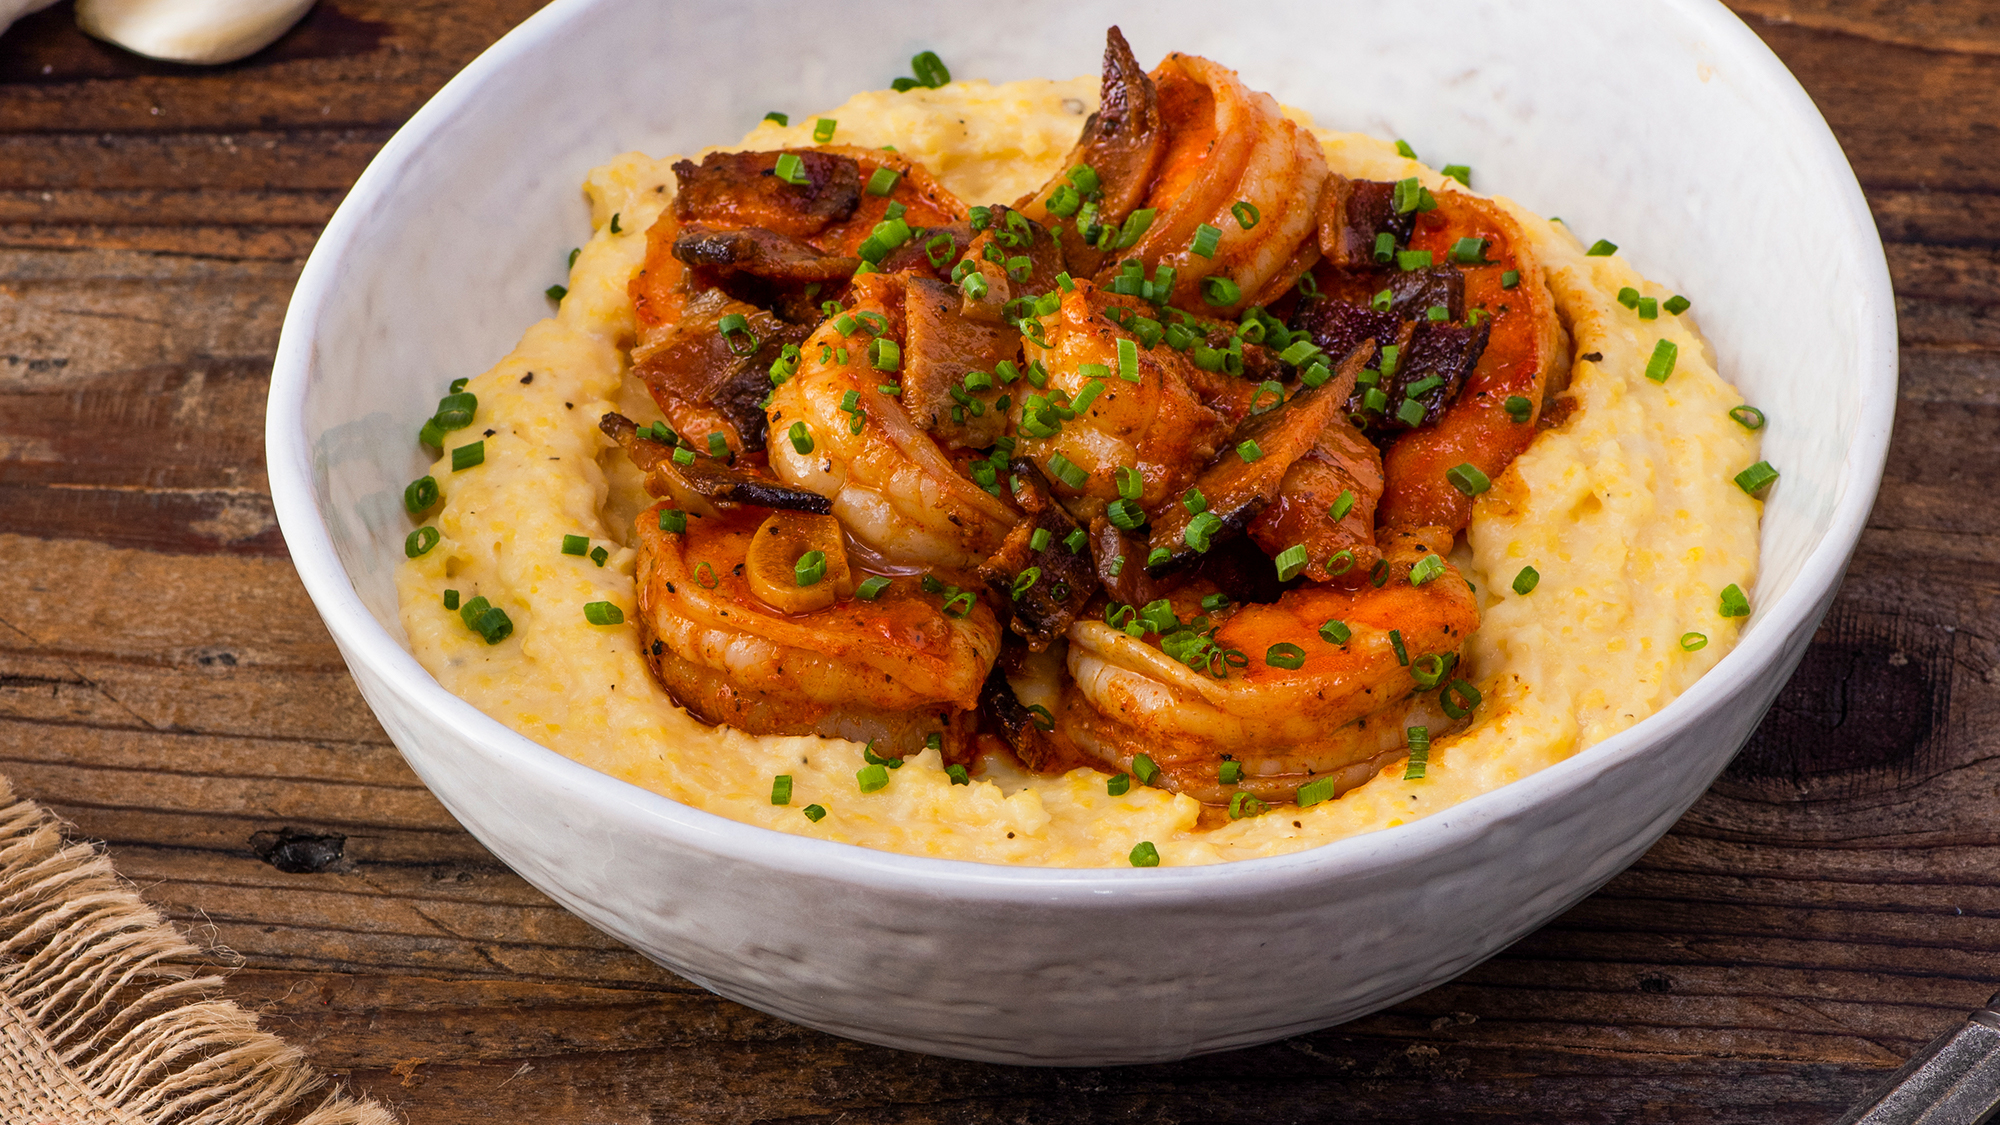 McCormick Shrimp and Grits